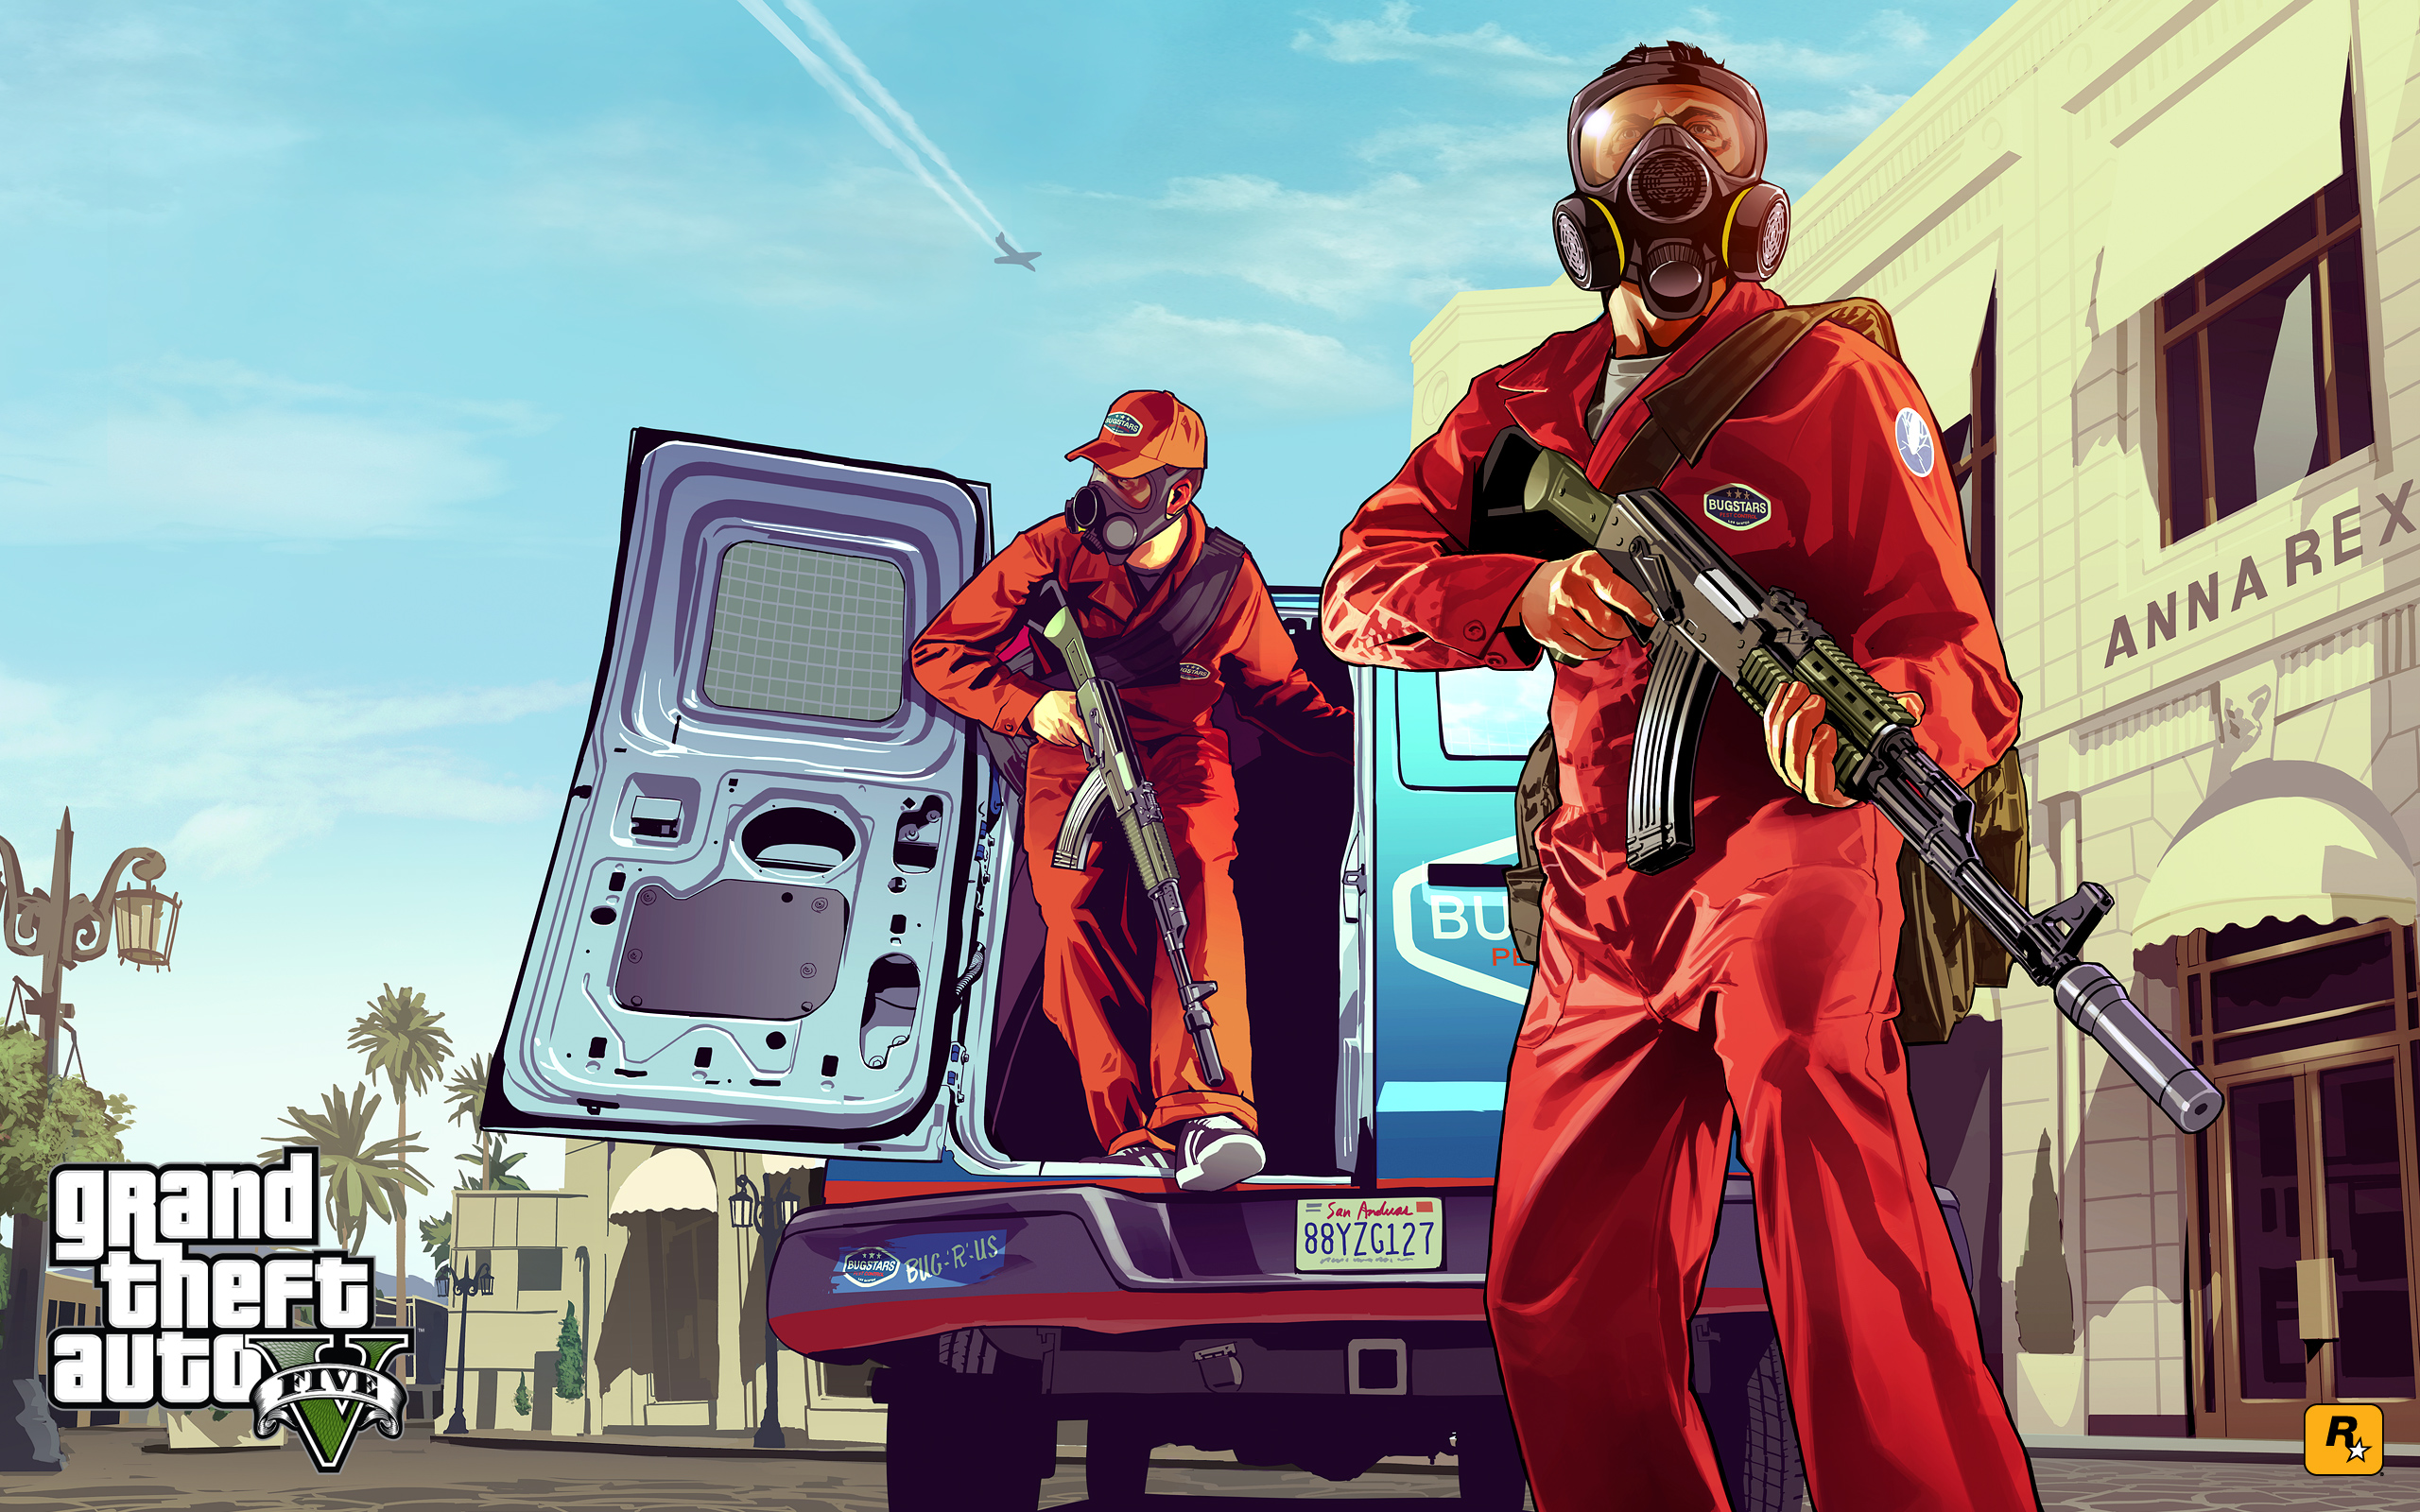 grand theft auto 5 wallpaper hd 45597